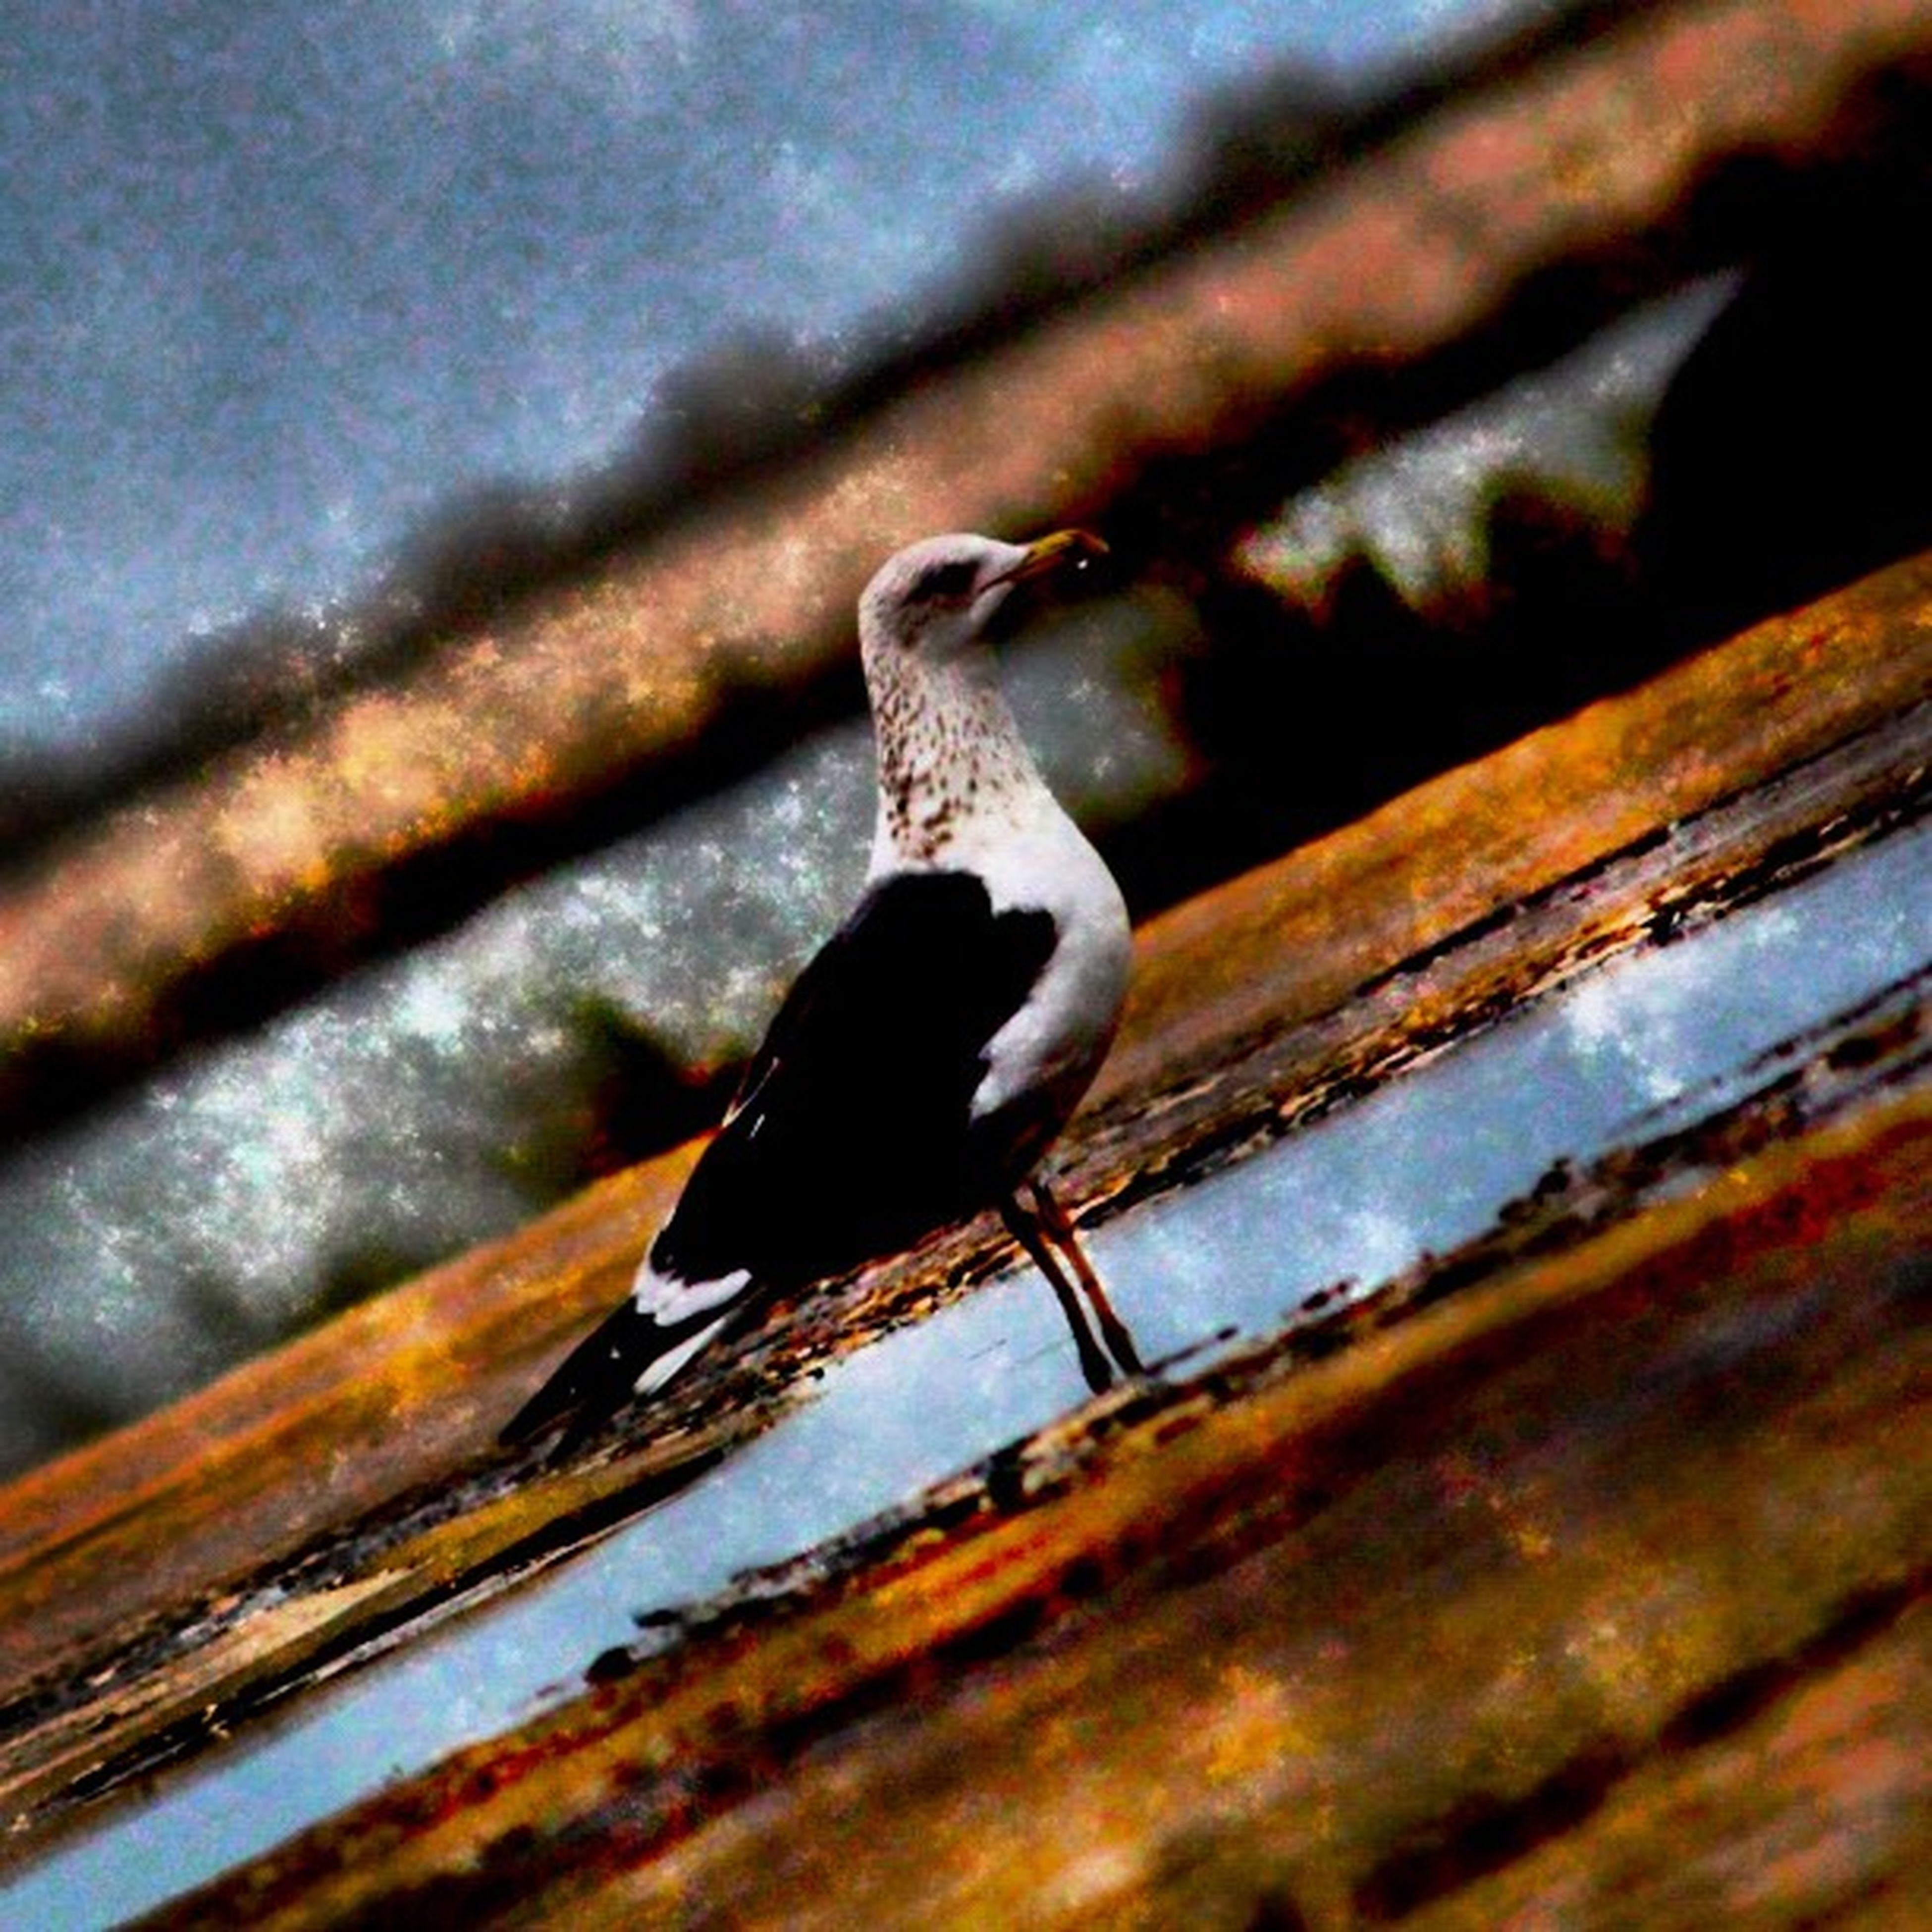 animal themes, one animal, animals in the wild, wood - material, close-up, wildlife, metal, selective focus, focus on foreground, wooden, bird, wood, plank, rusty, day, perching, outdoors, snail, no people, metallic